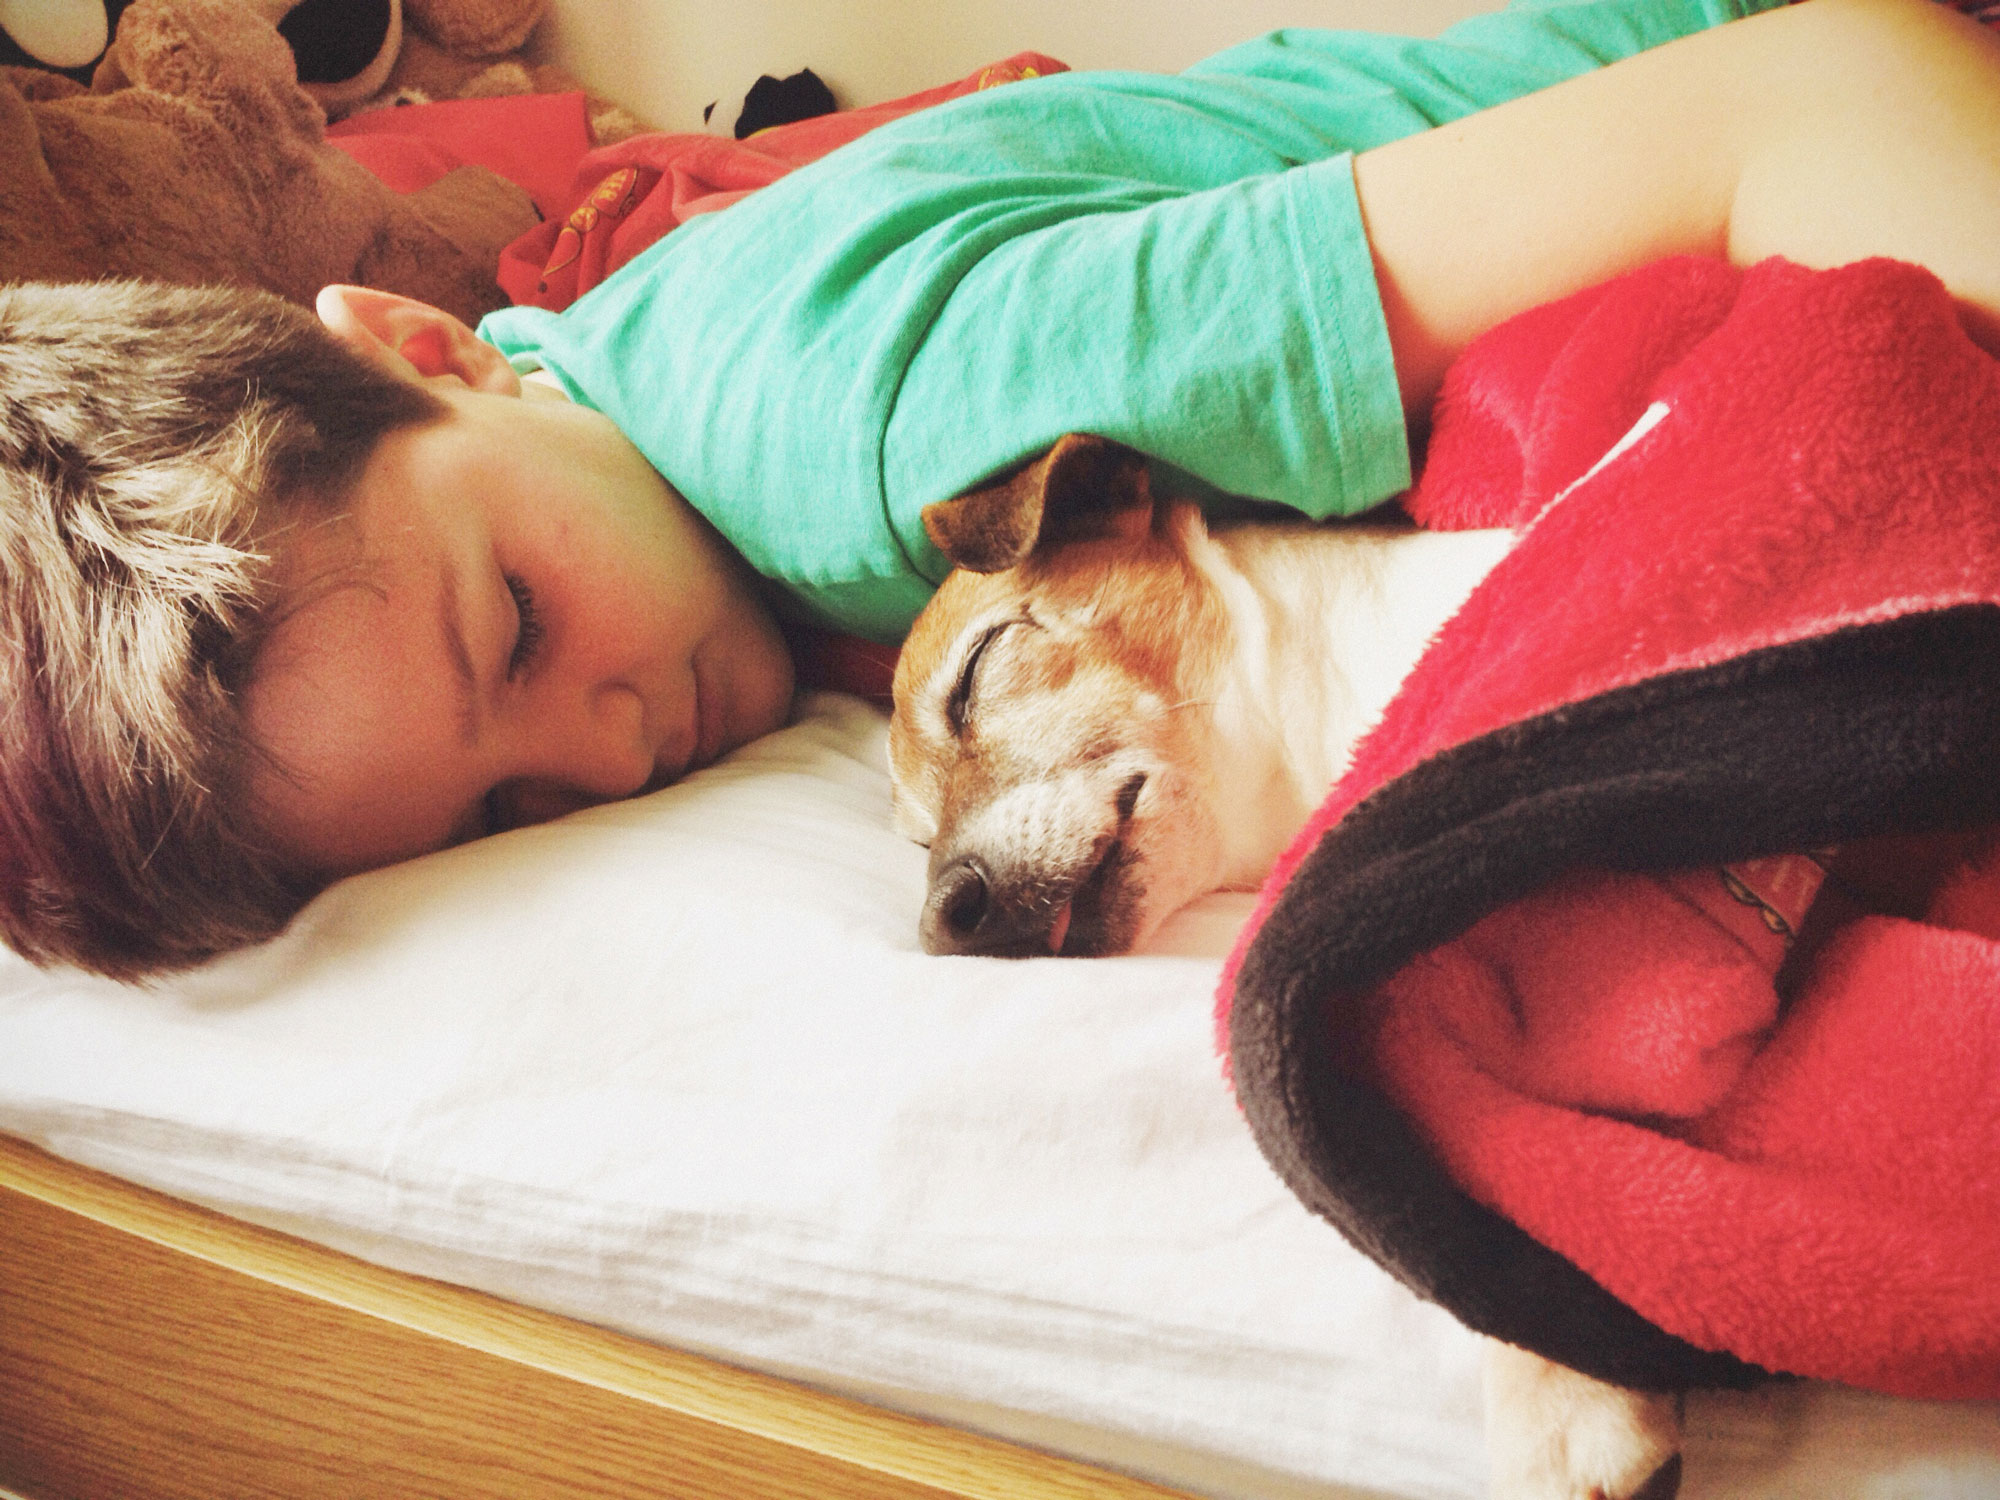 Young boy resting in his bed with a sleeping dog.